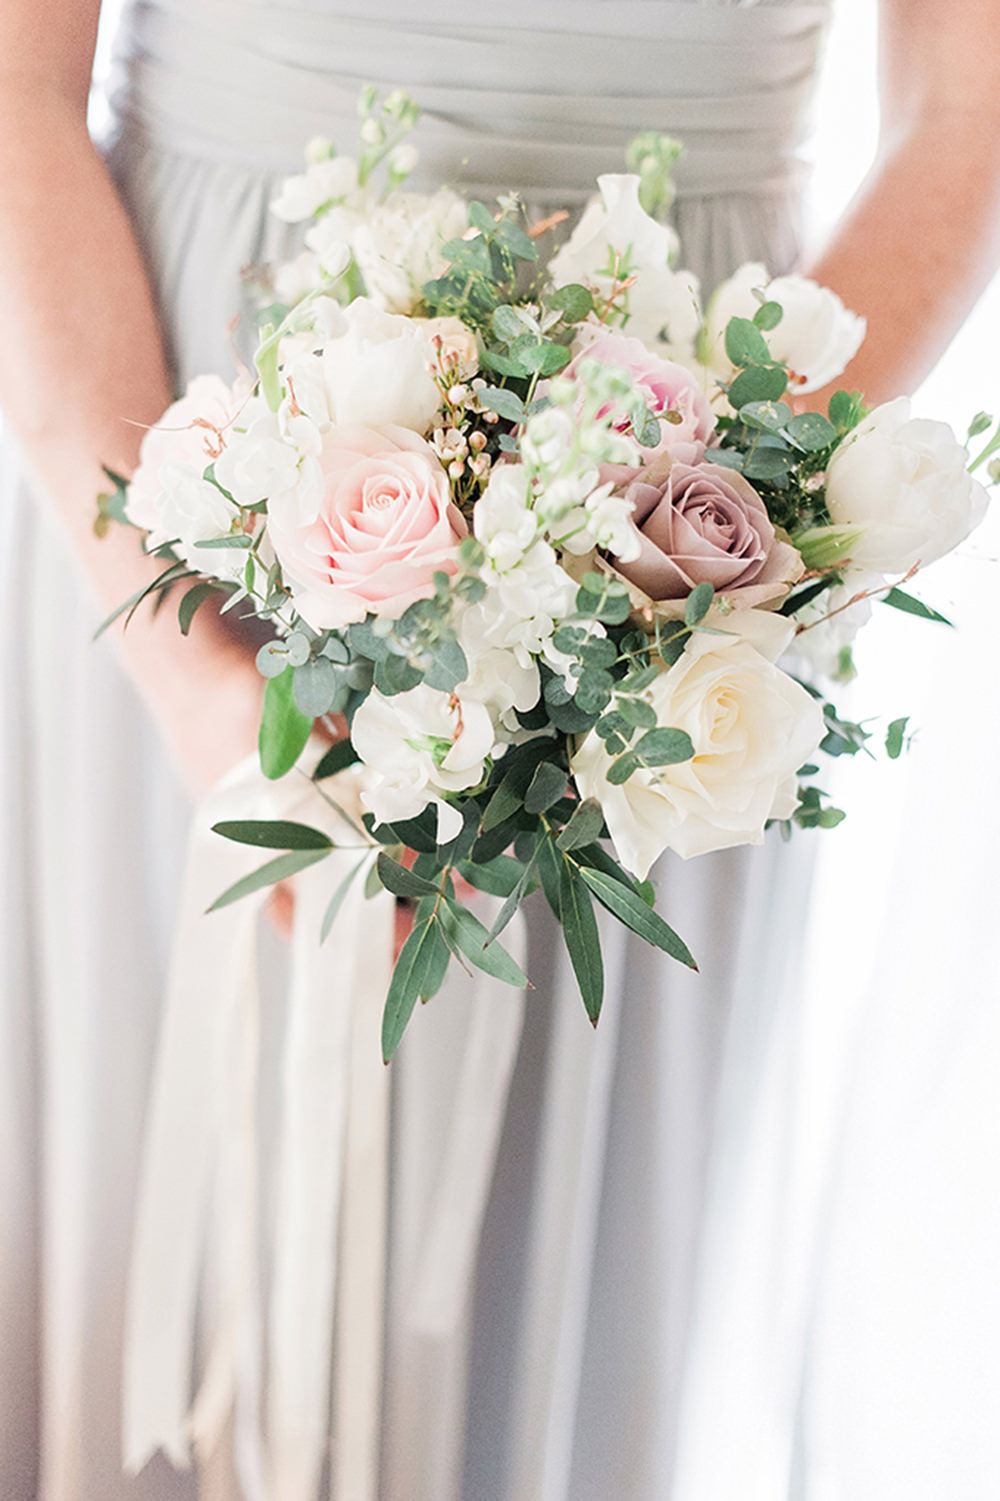 Bride Bridal Bridesmaids Bouquet Pink White Blush Roses Greenery Foliage Edmondsham House Wedding Darima Frampton Photography